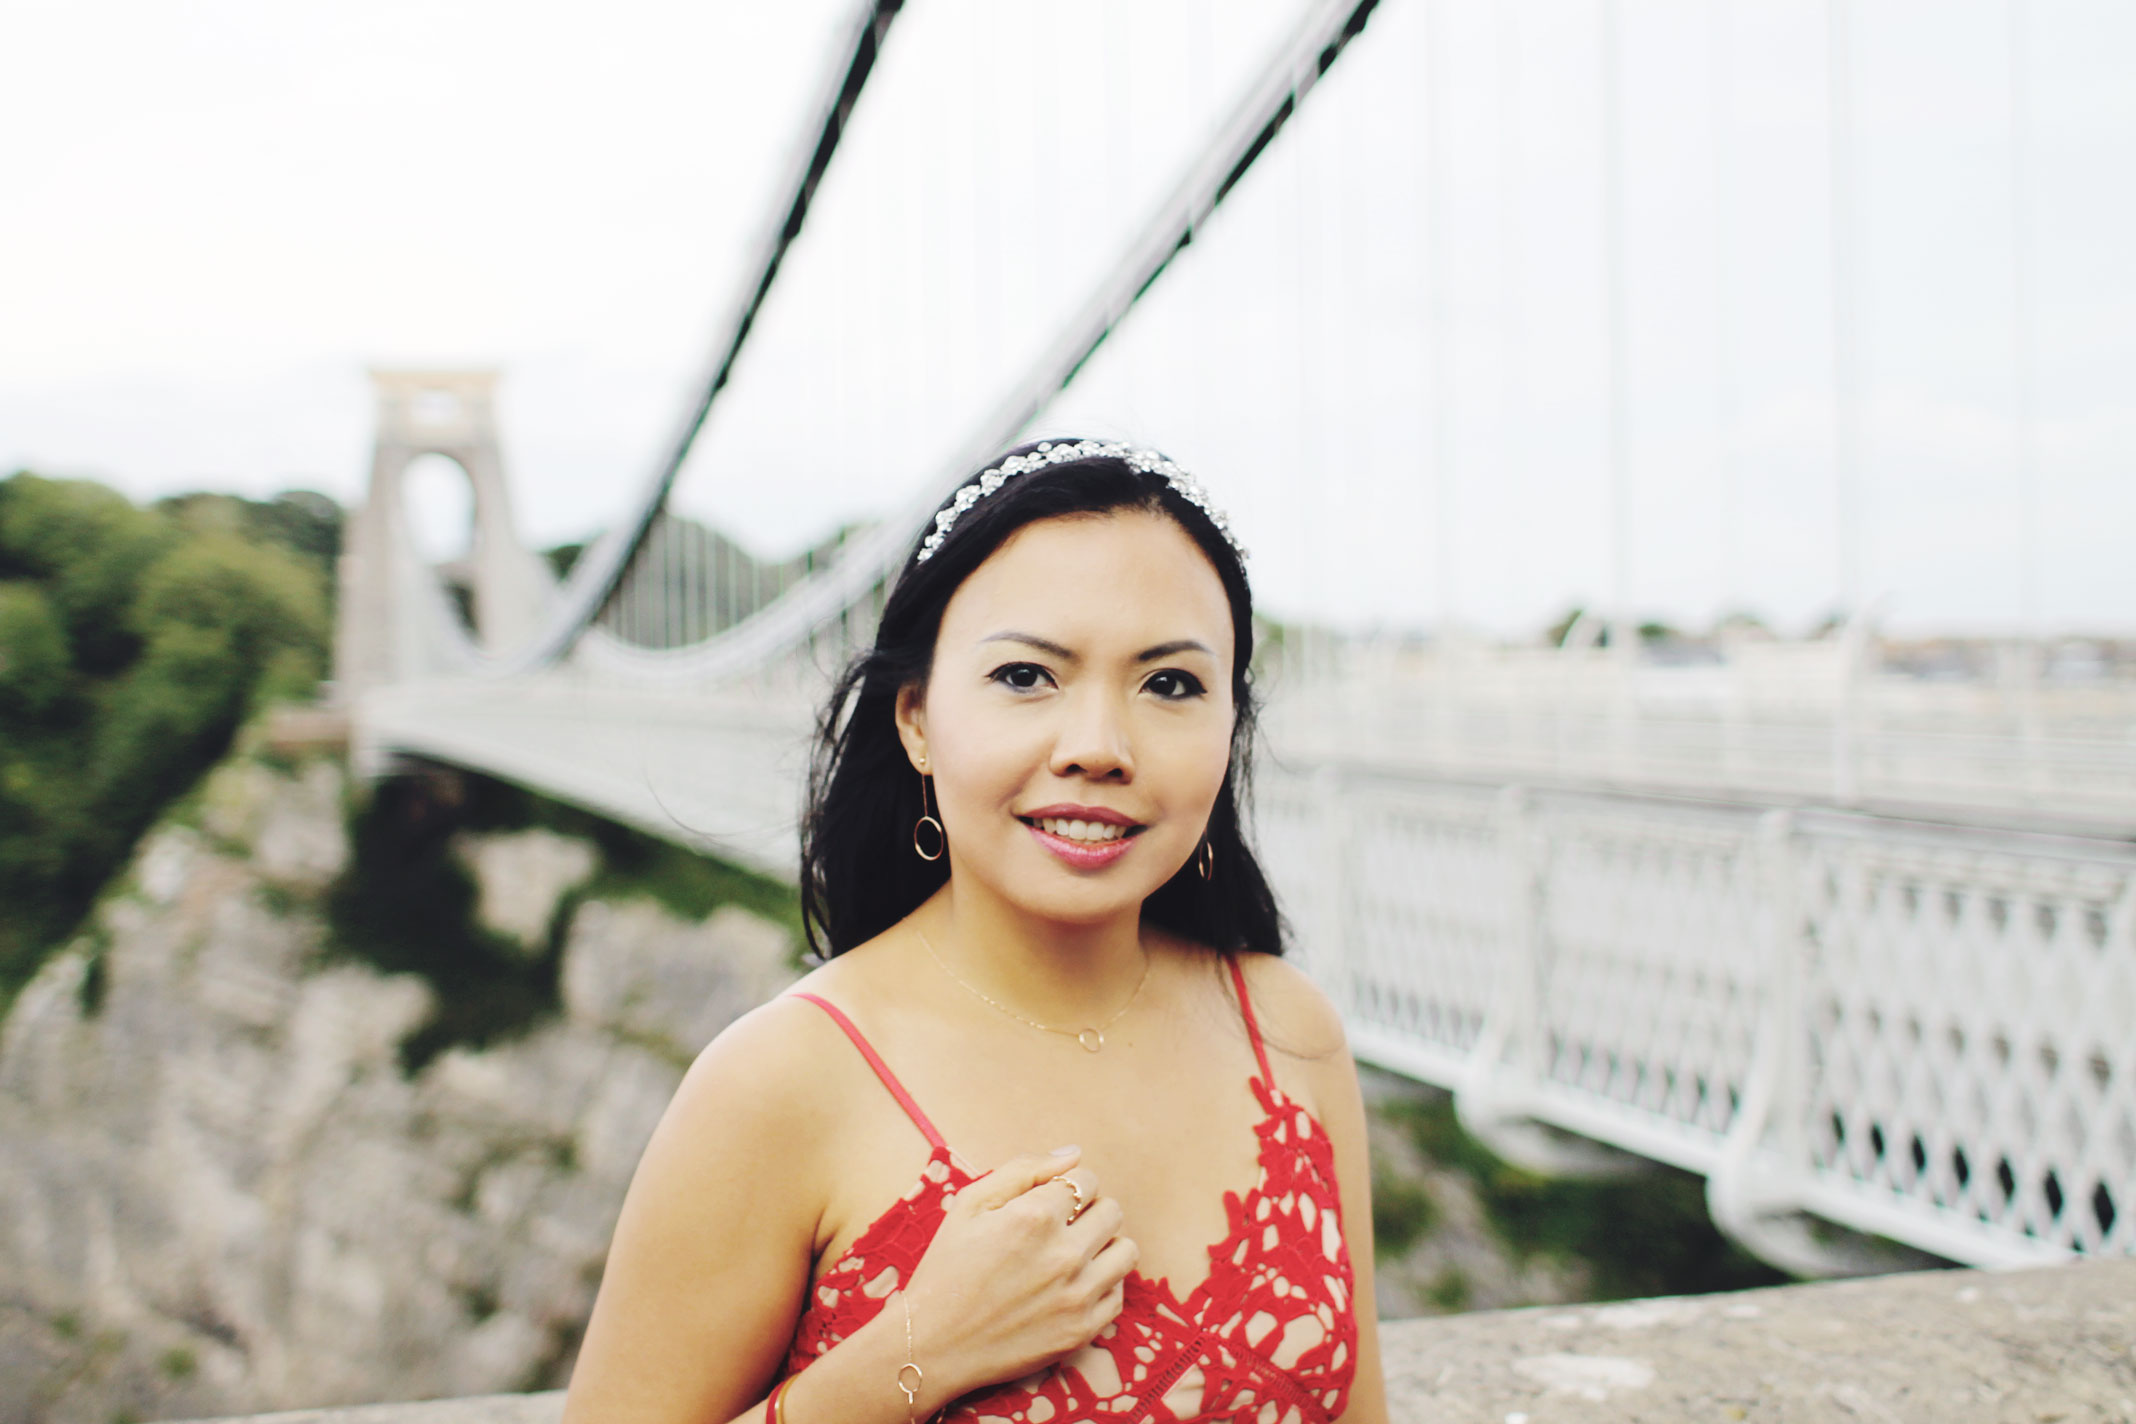 Styleat30 - Travel UK - Bristol - Clifton Suspension Bridge - Start a Blog - Party Dress - Zaful Promotion 02